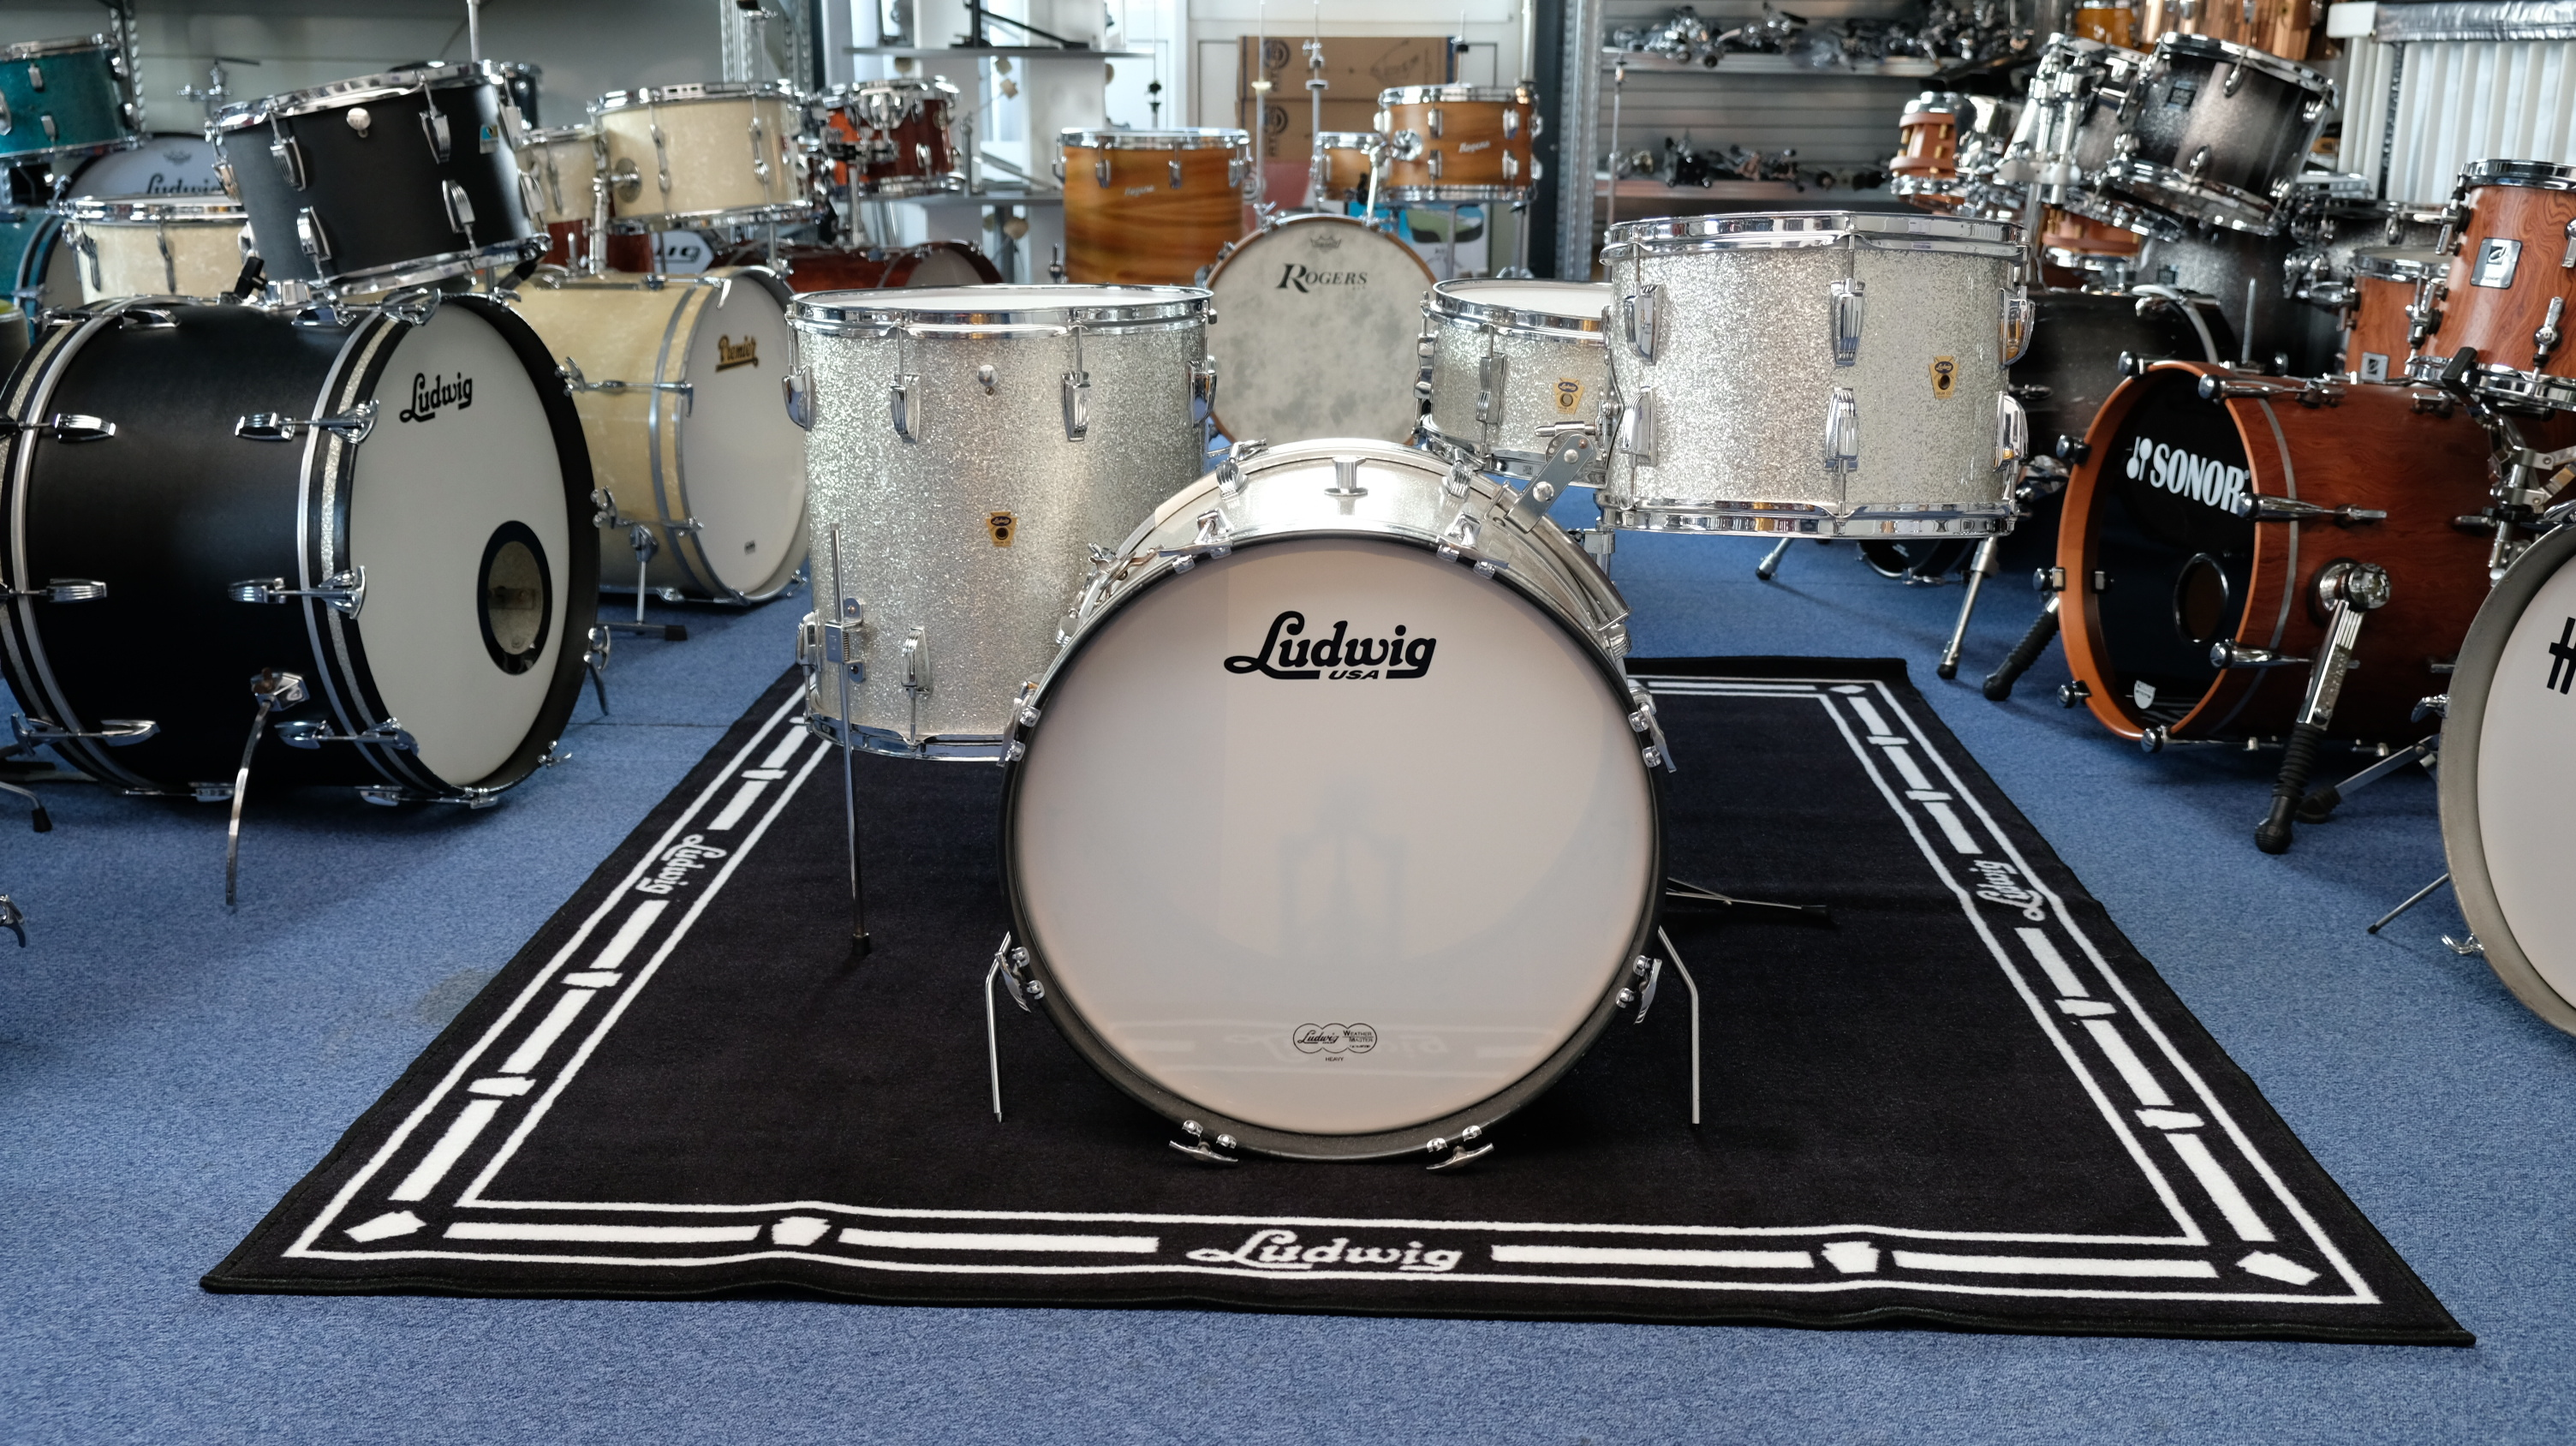 Drum_show_room_kits